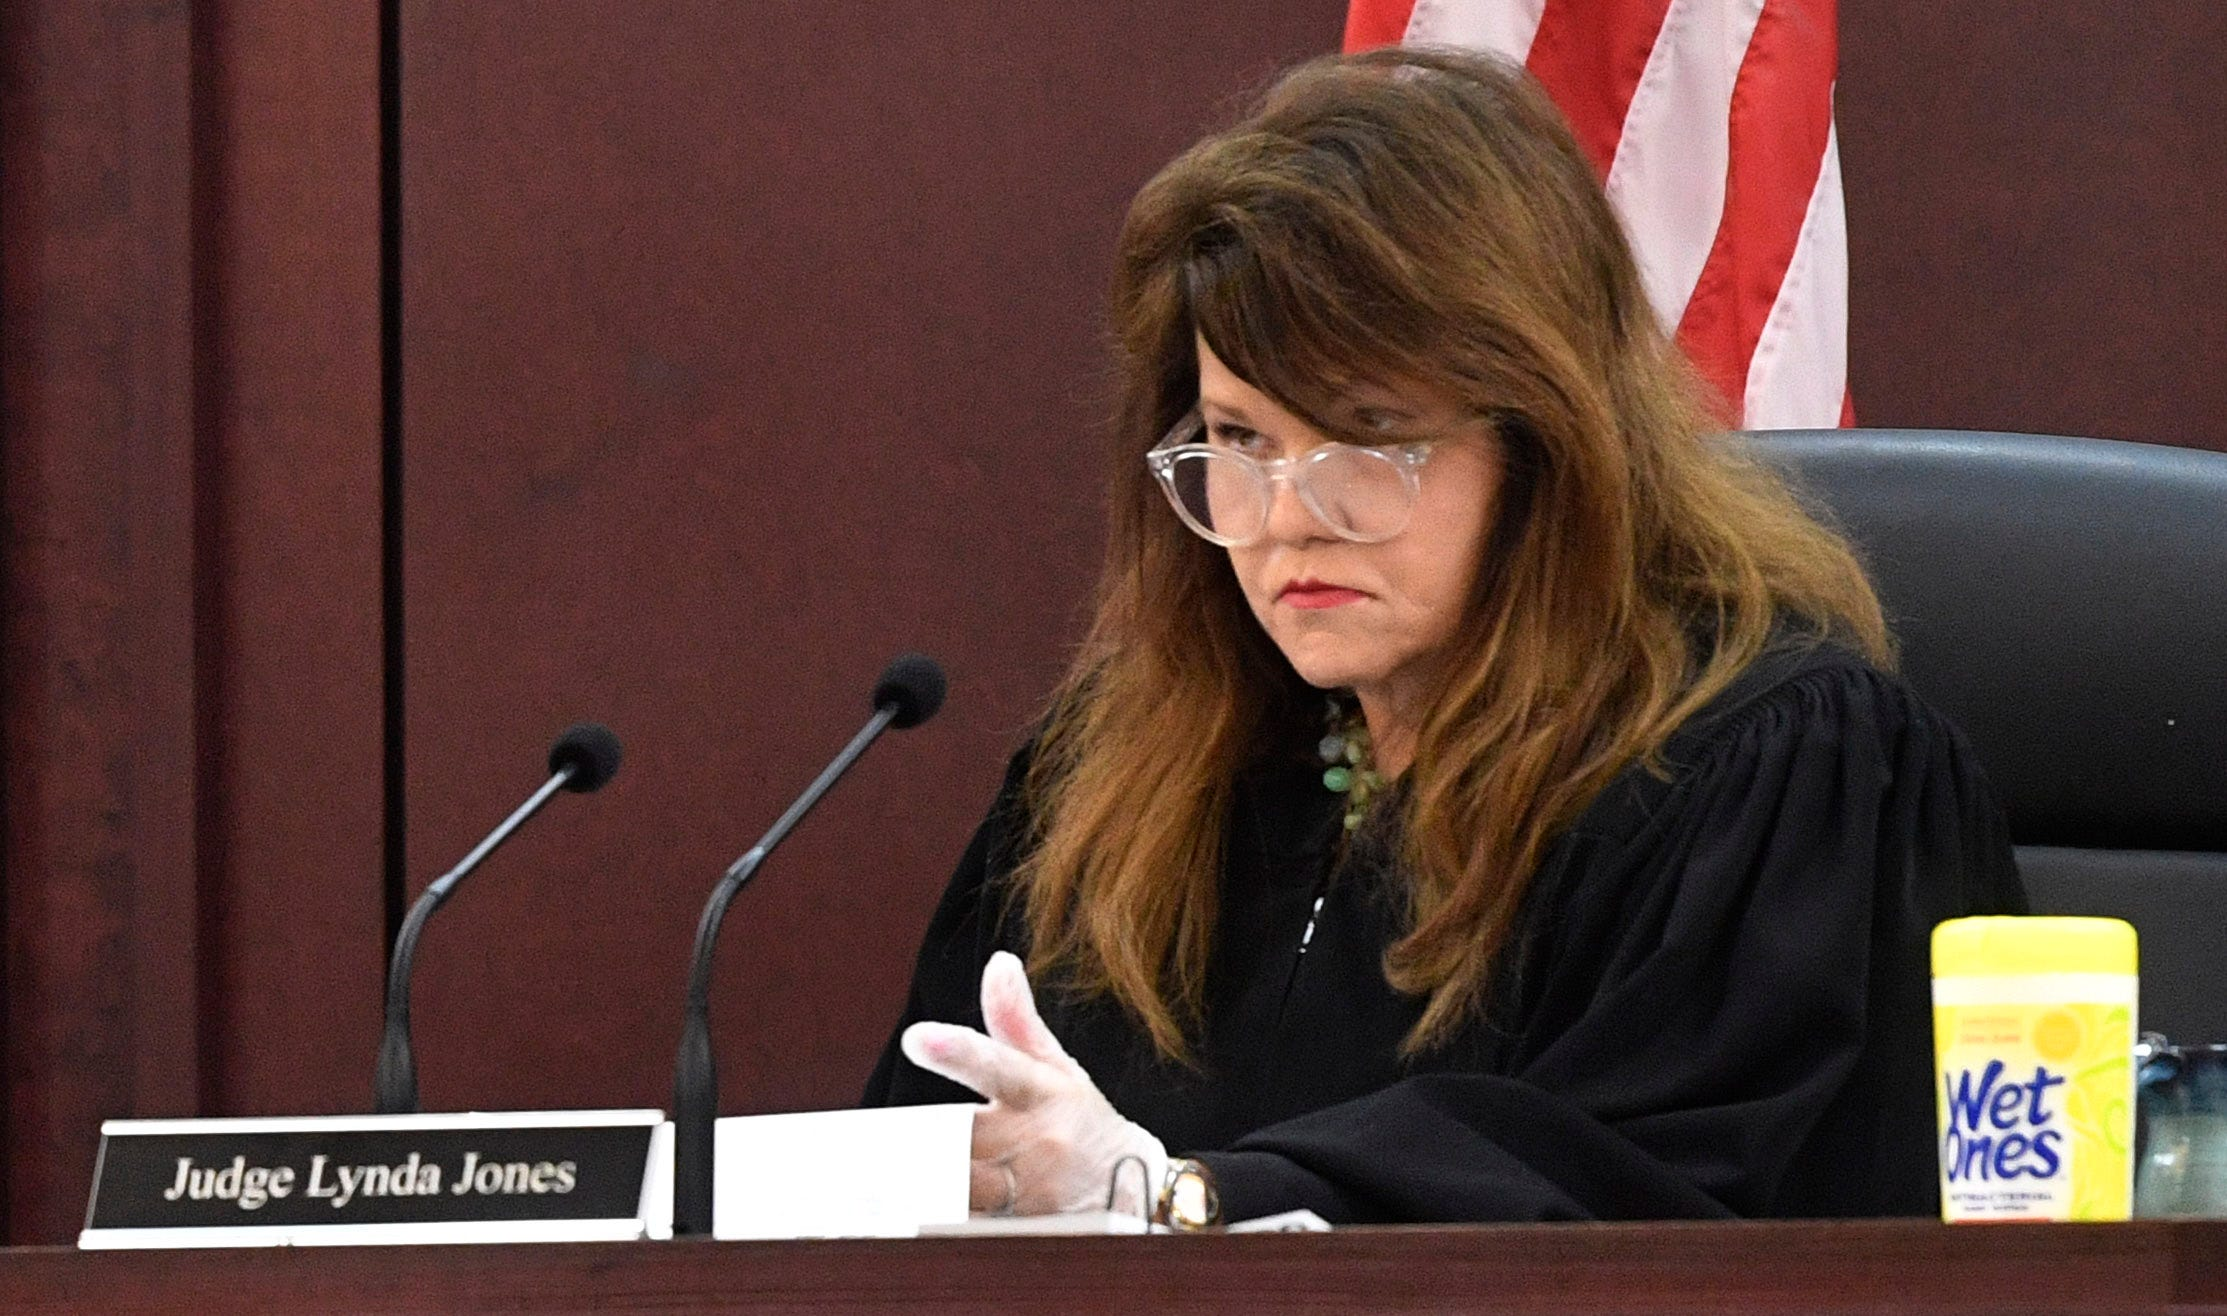 """""""The general consensus among our conference is that all judges currently comply,"""" Davidson County General Sessions Judge Lynda Jones told Knox News when questioned about whether judges were following Tennessee law about granting cash bail in criminal cases."""